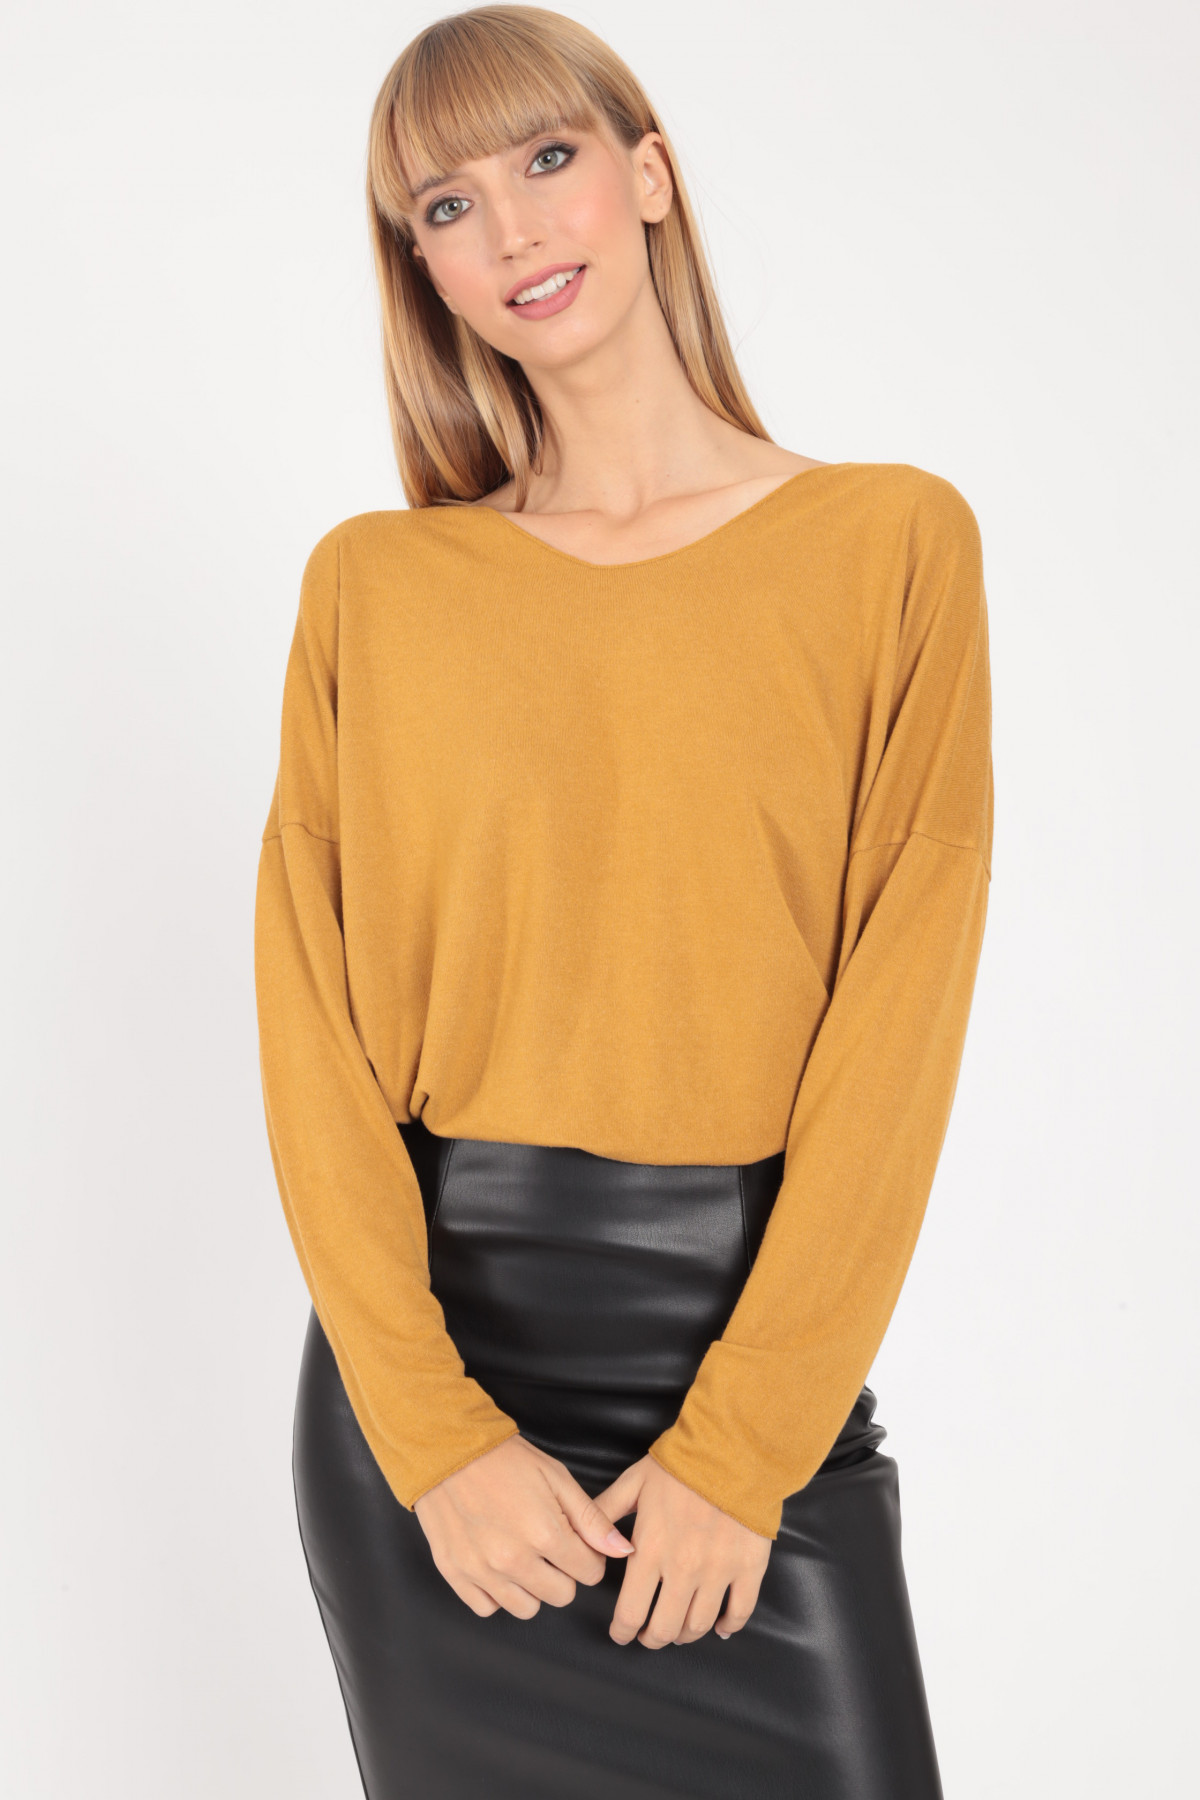 Over T-Shirt in Viscose with Wide Neckline